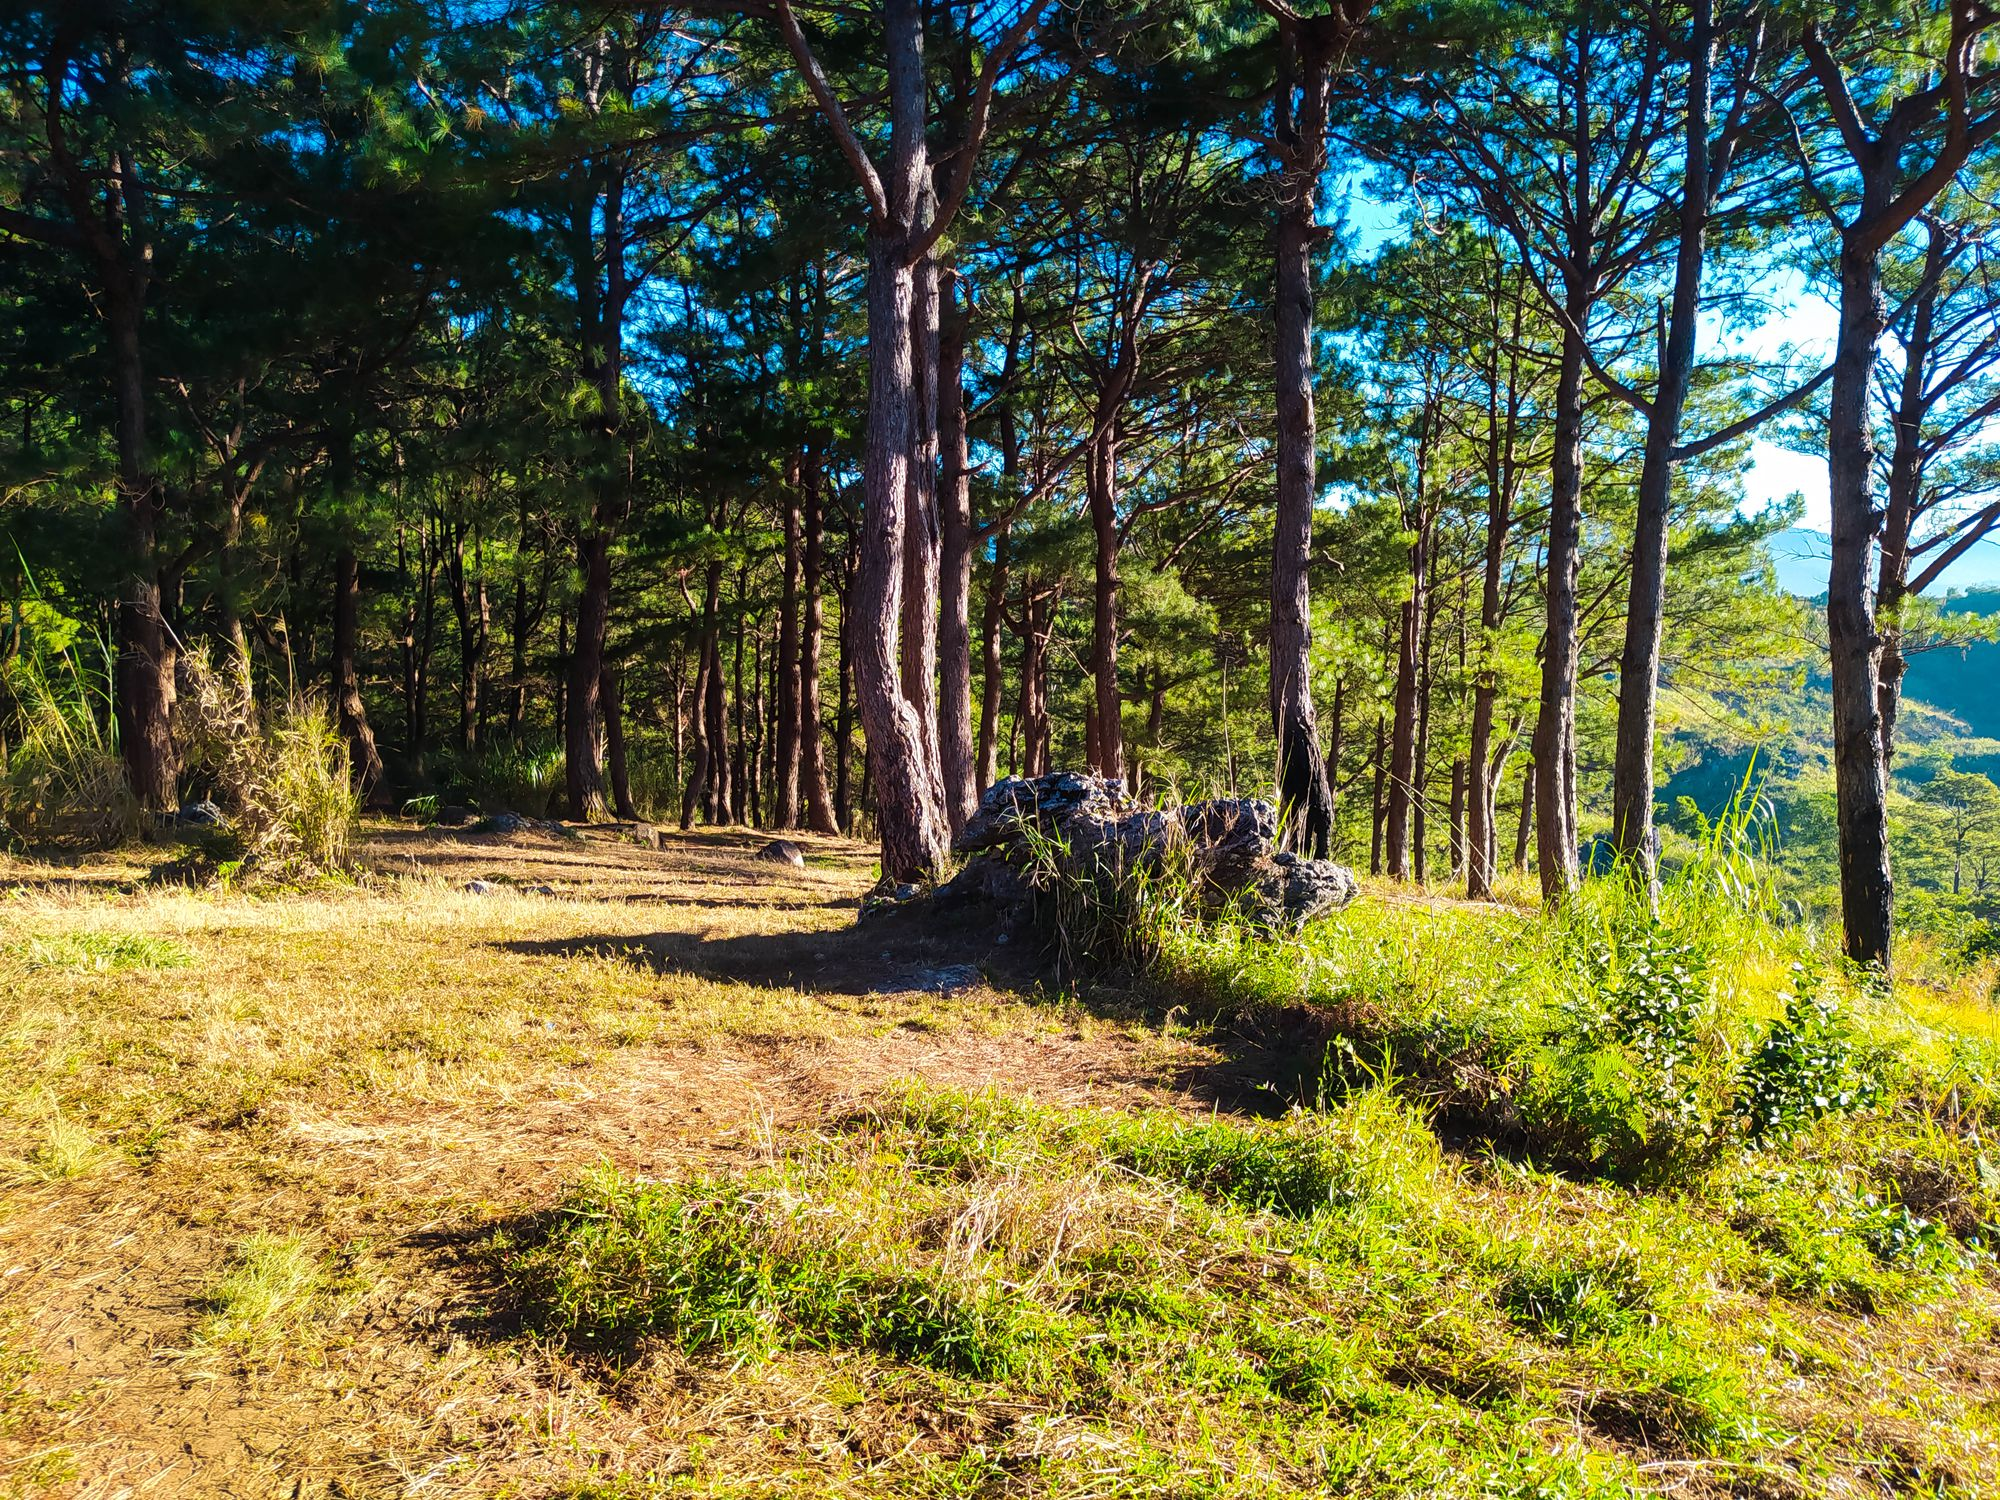 Sunlit area with grasses, rocks, and pine trees at Mount Kalugong